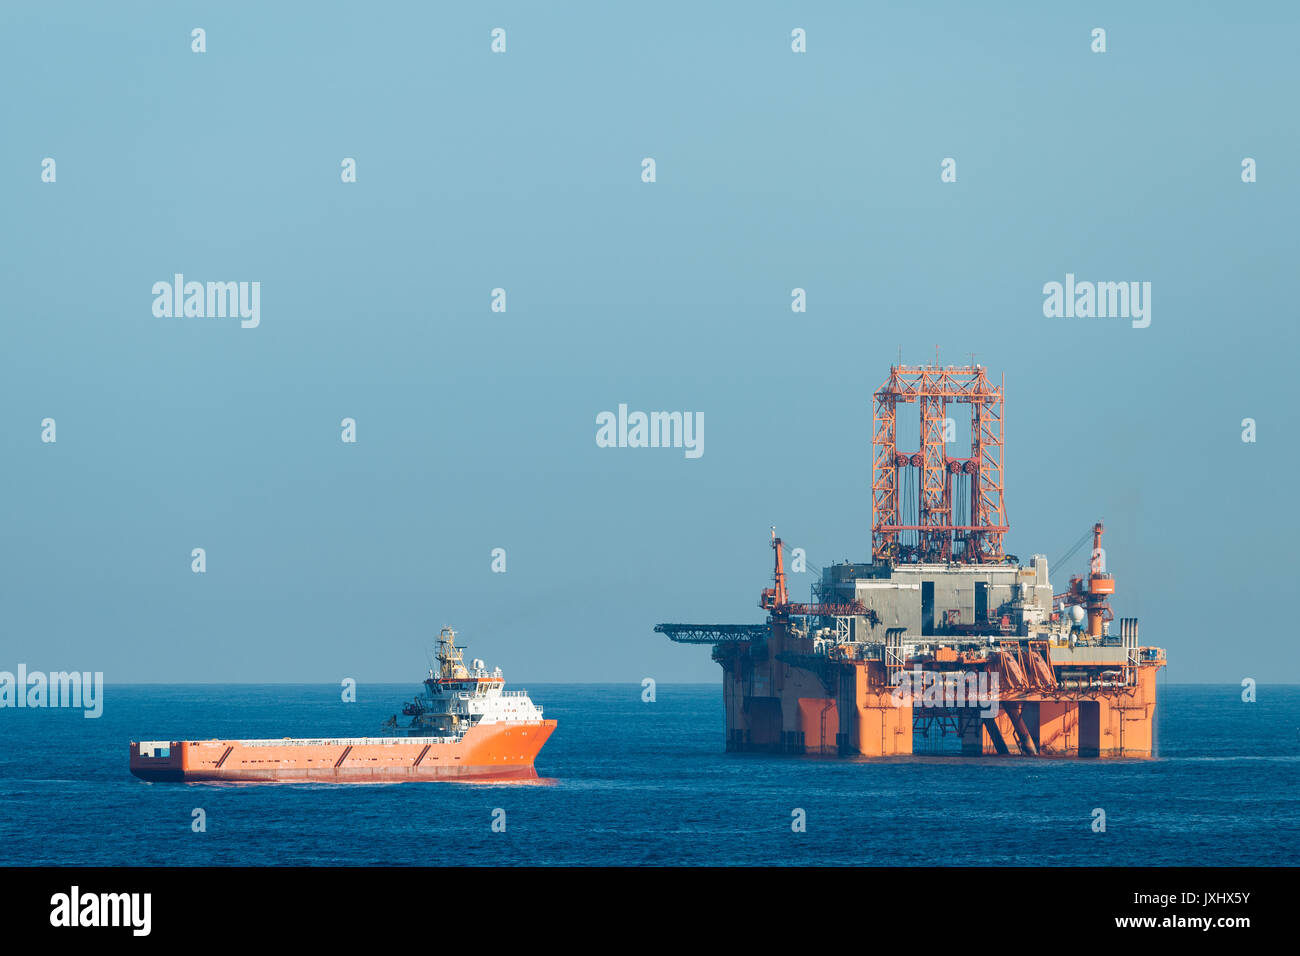 Supply vessel Normand Aurora next to West Phoenix oil rig, oil extraction, North Sea Stock Photo